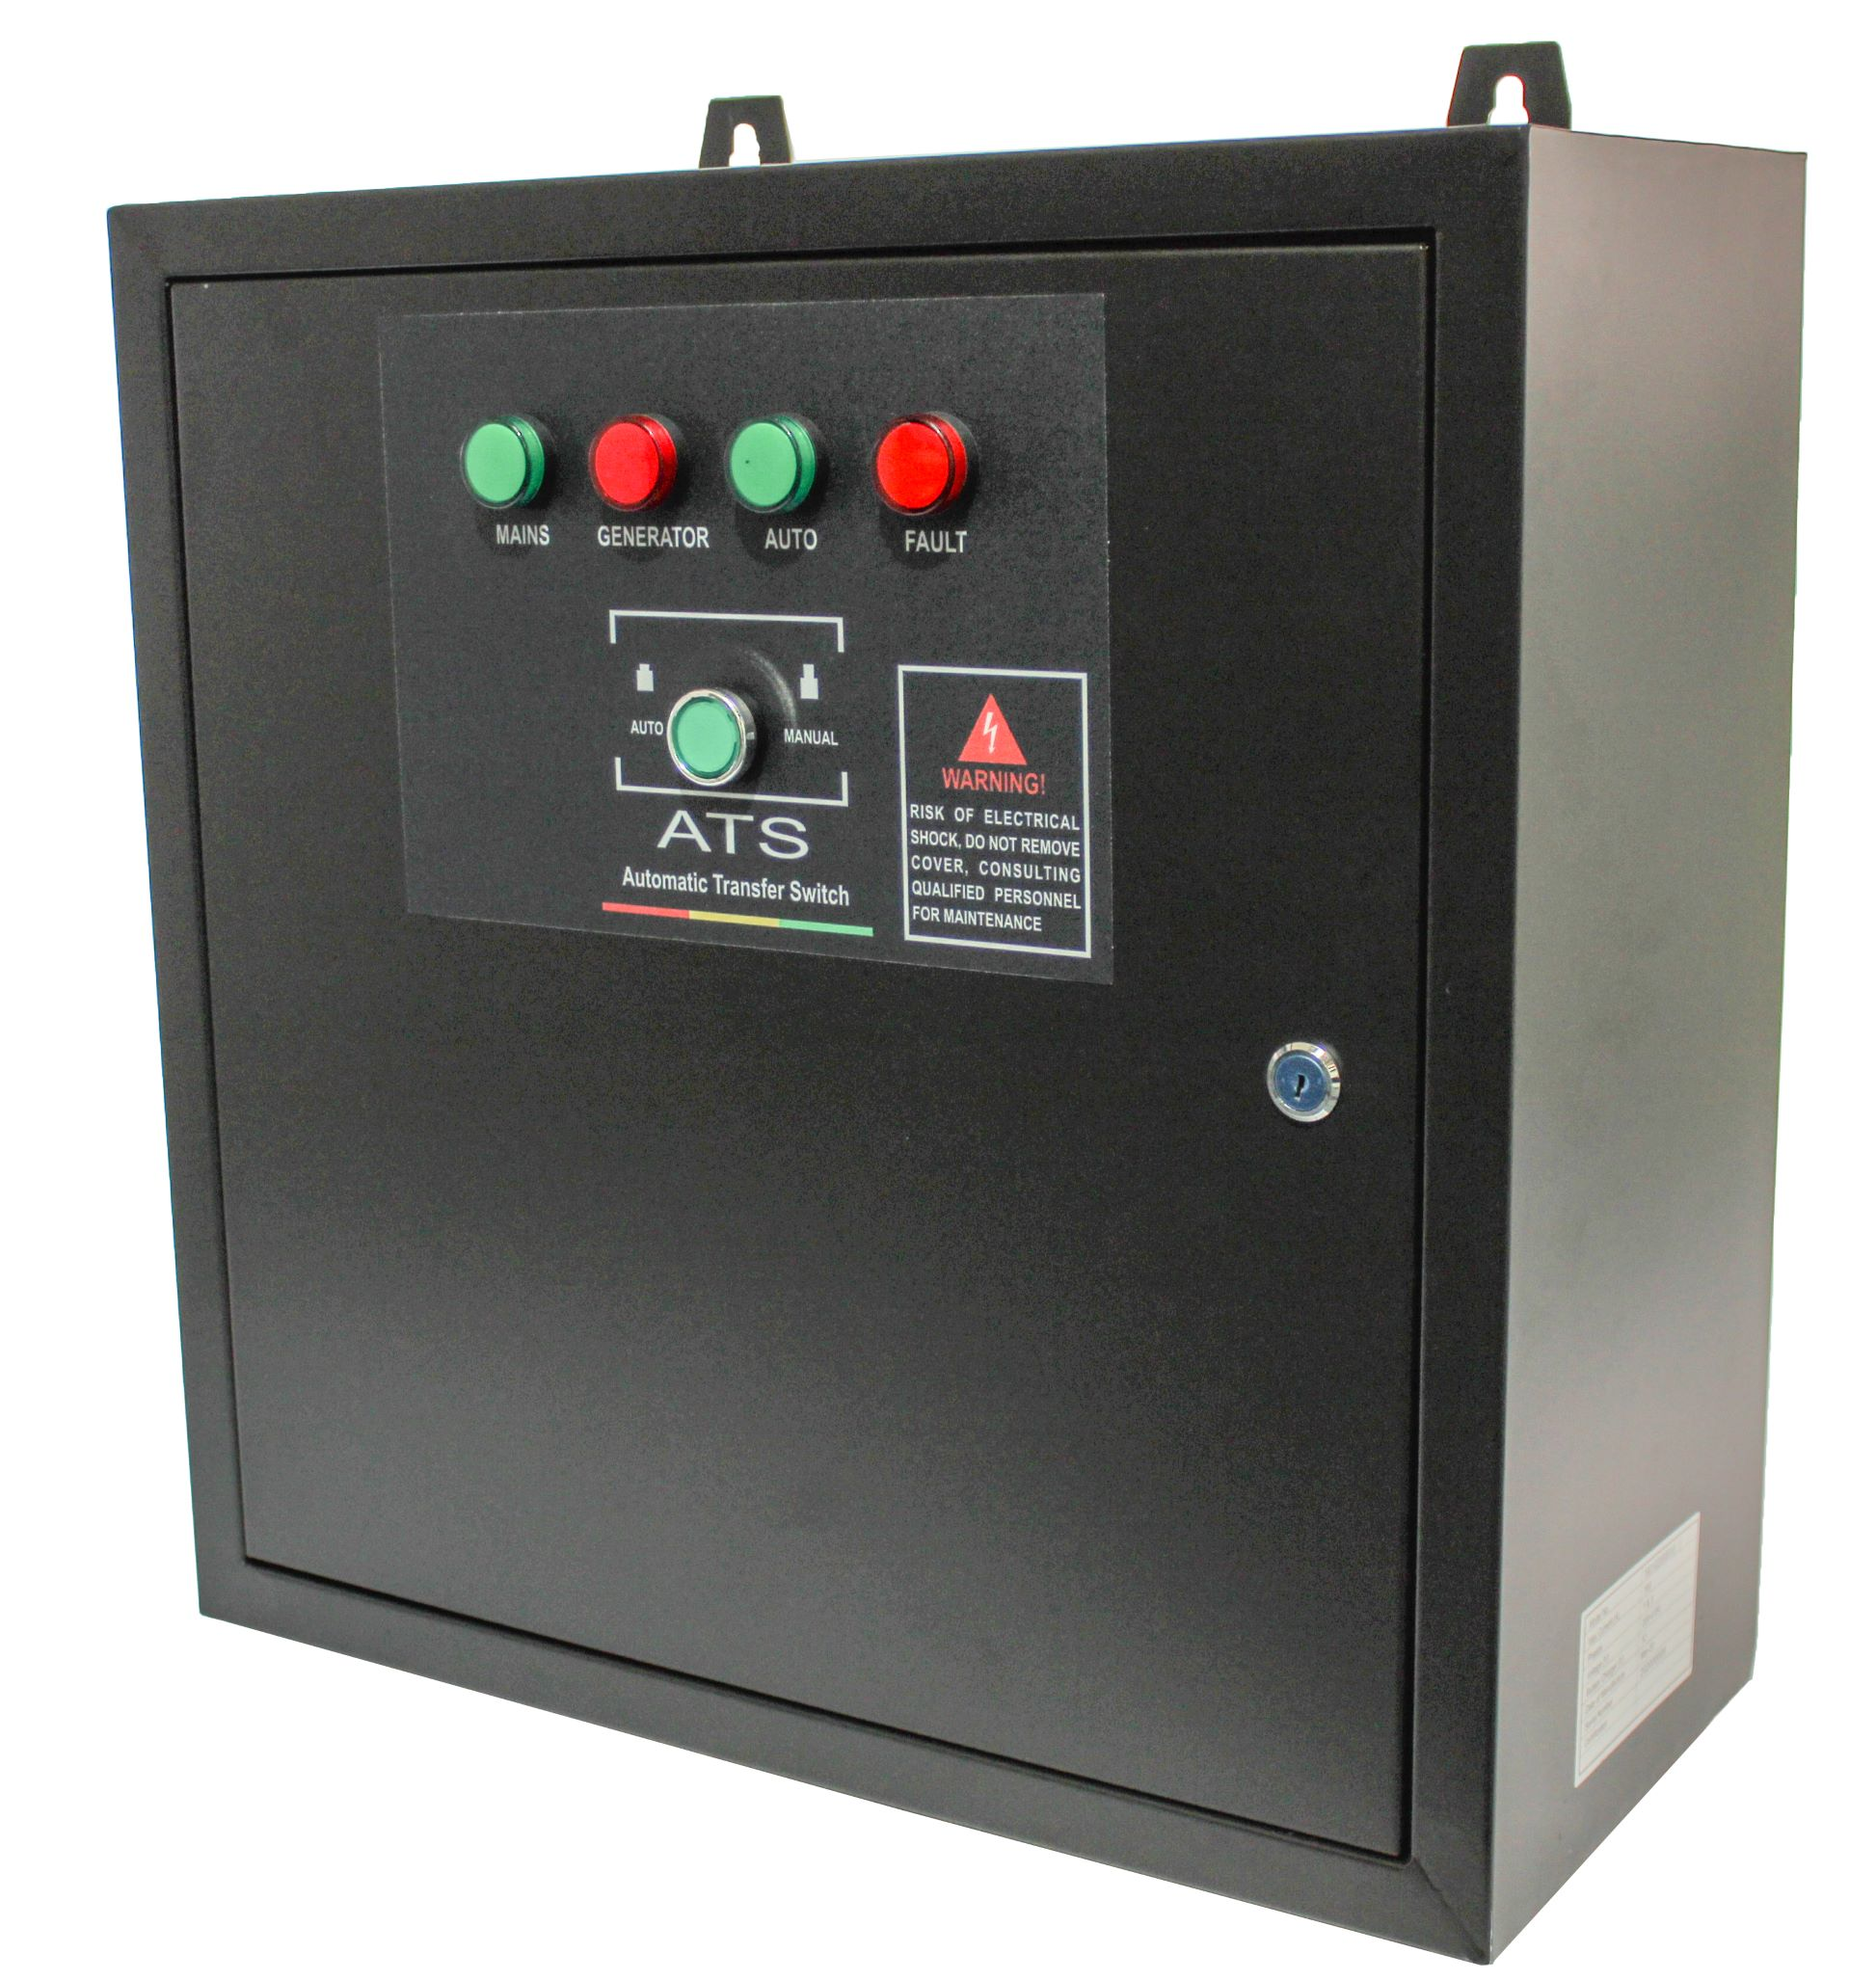 Diesel ATS - Automatic Transfer Switch